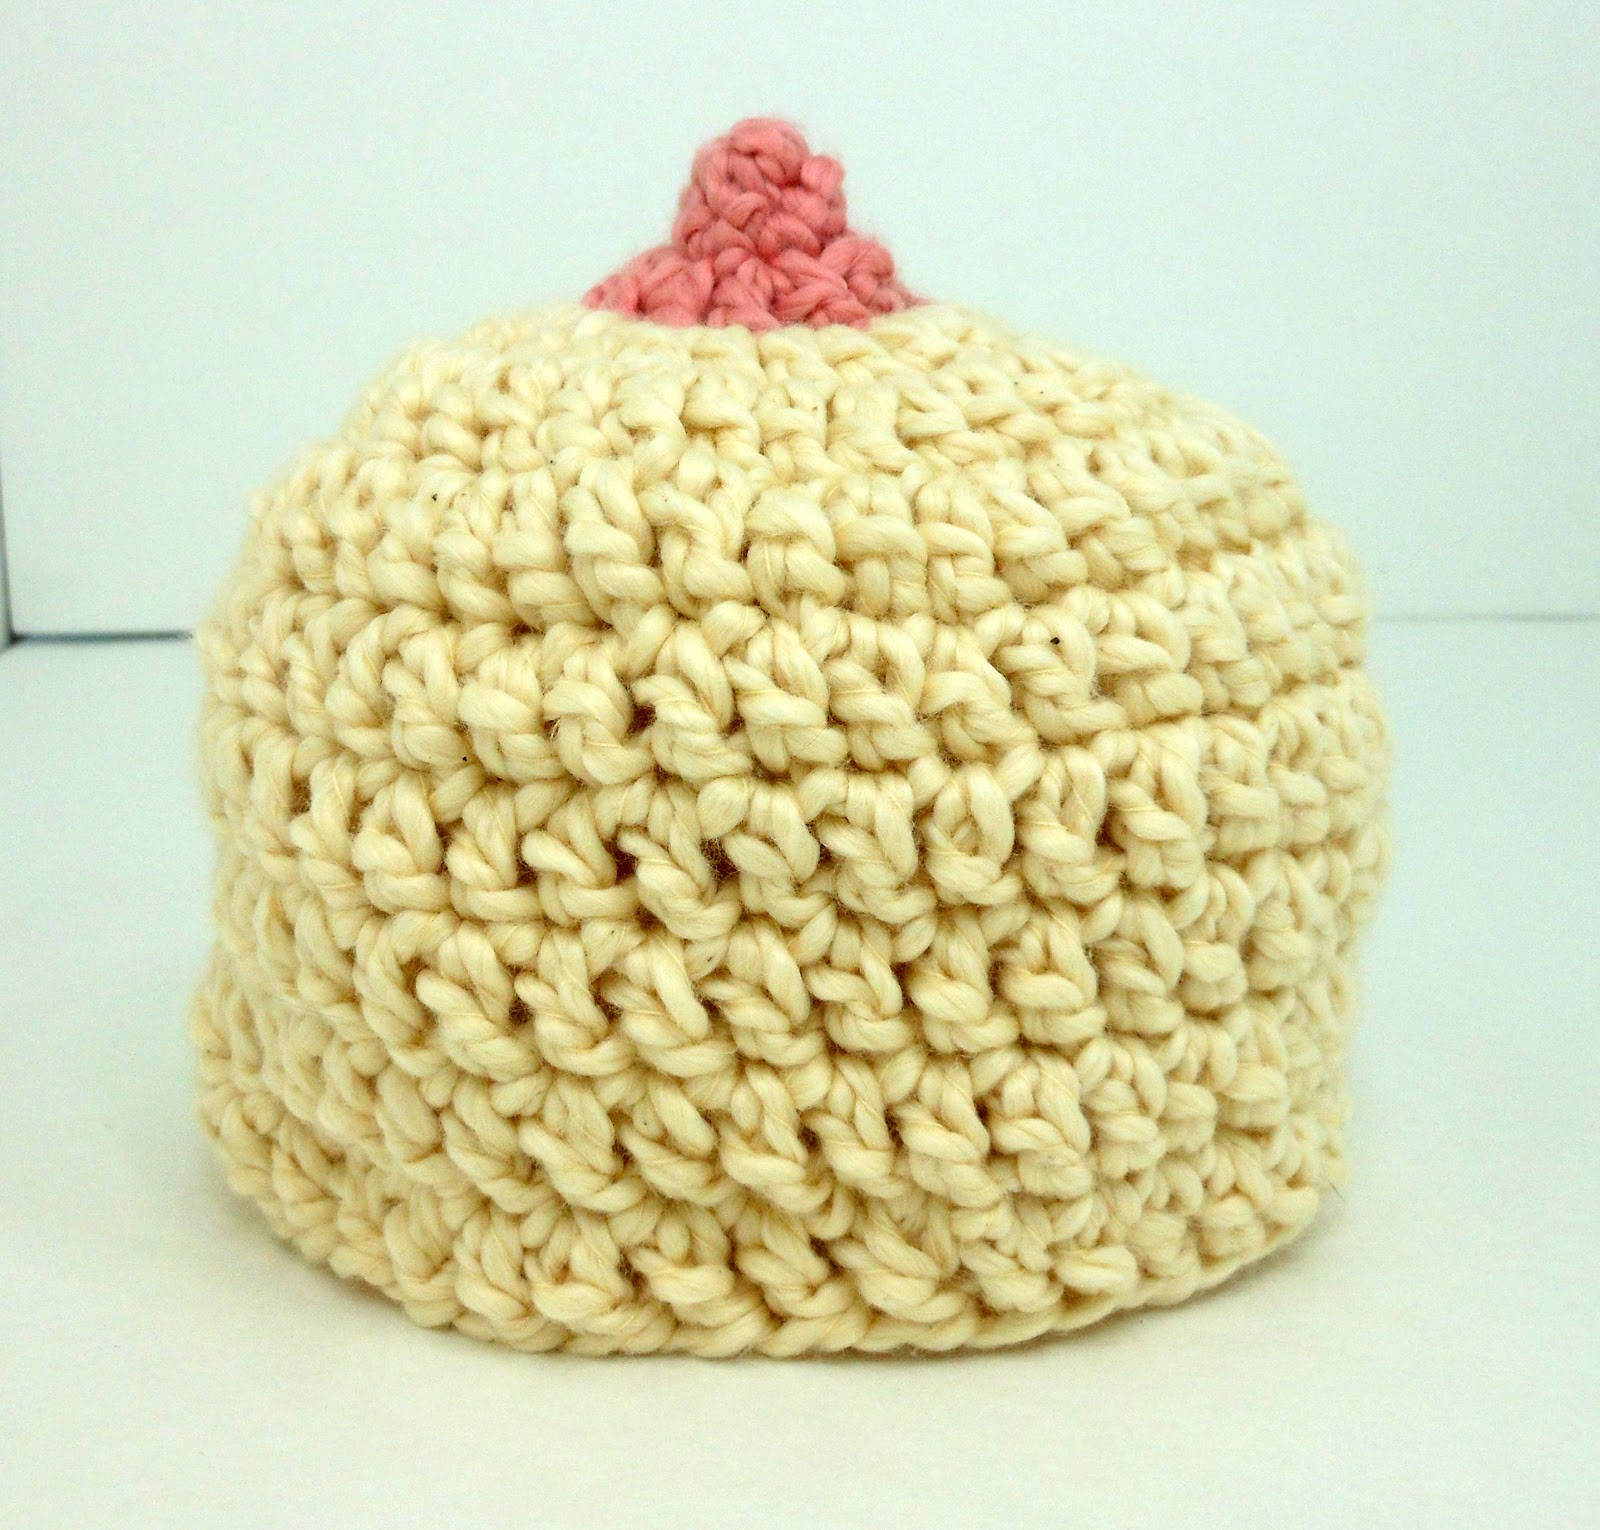 b3c8a439f All Things Soft and Spinable: Altered Boob Hat Crochet Pattern